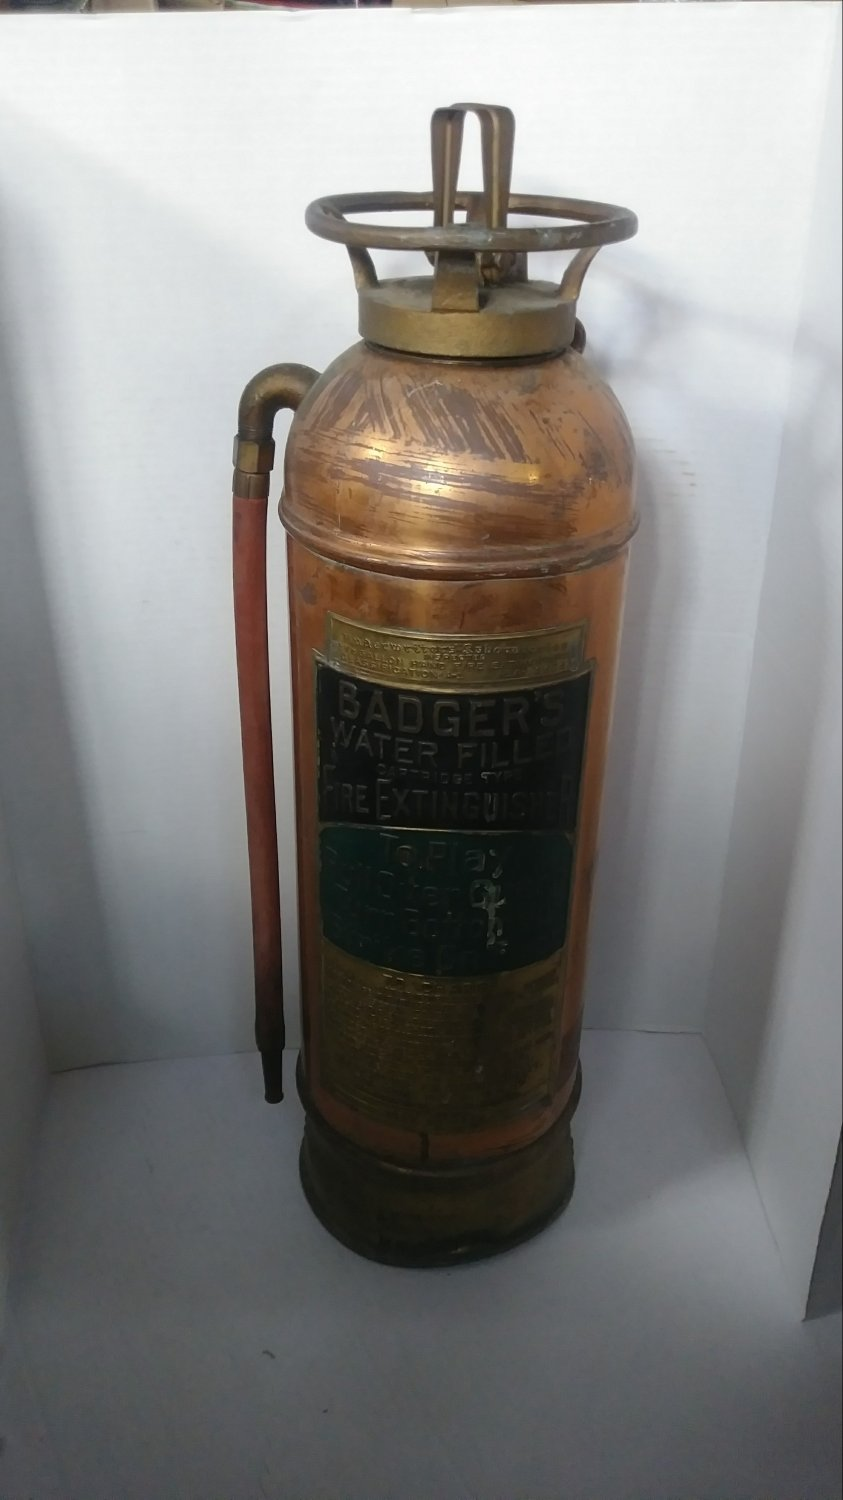 Antique Copper Brass Badger's Fire Extinguisher